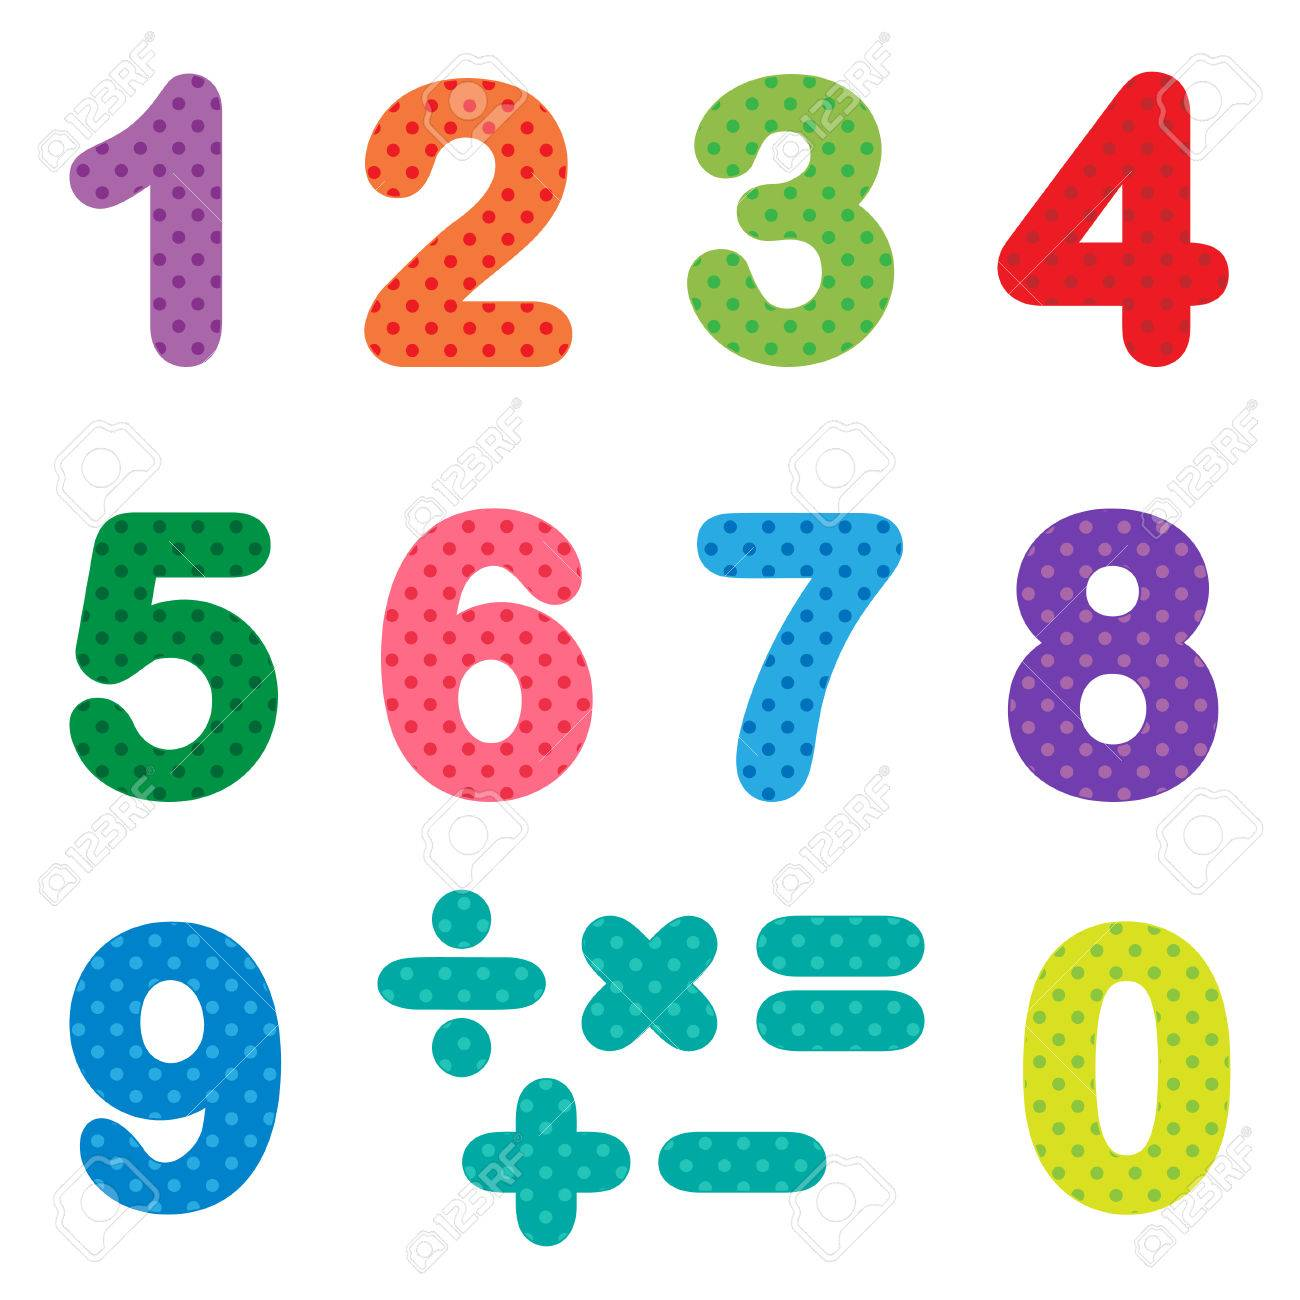 Numbers from zero to nine with mathematical signs royalty free numbers from zero to nine with mathematical signs stock vector 81951049 biocorpaavc